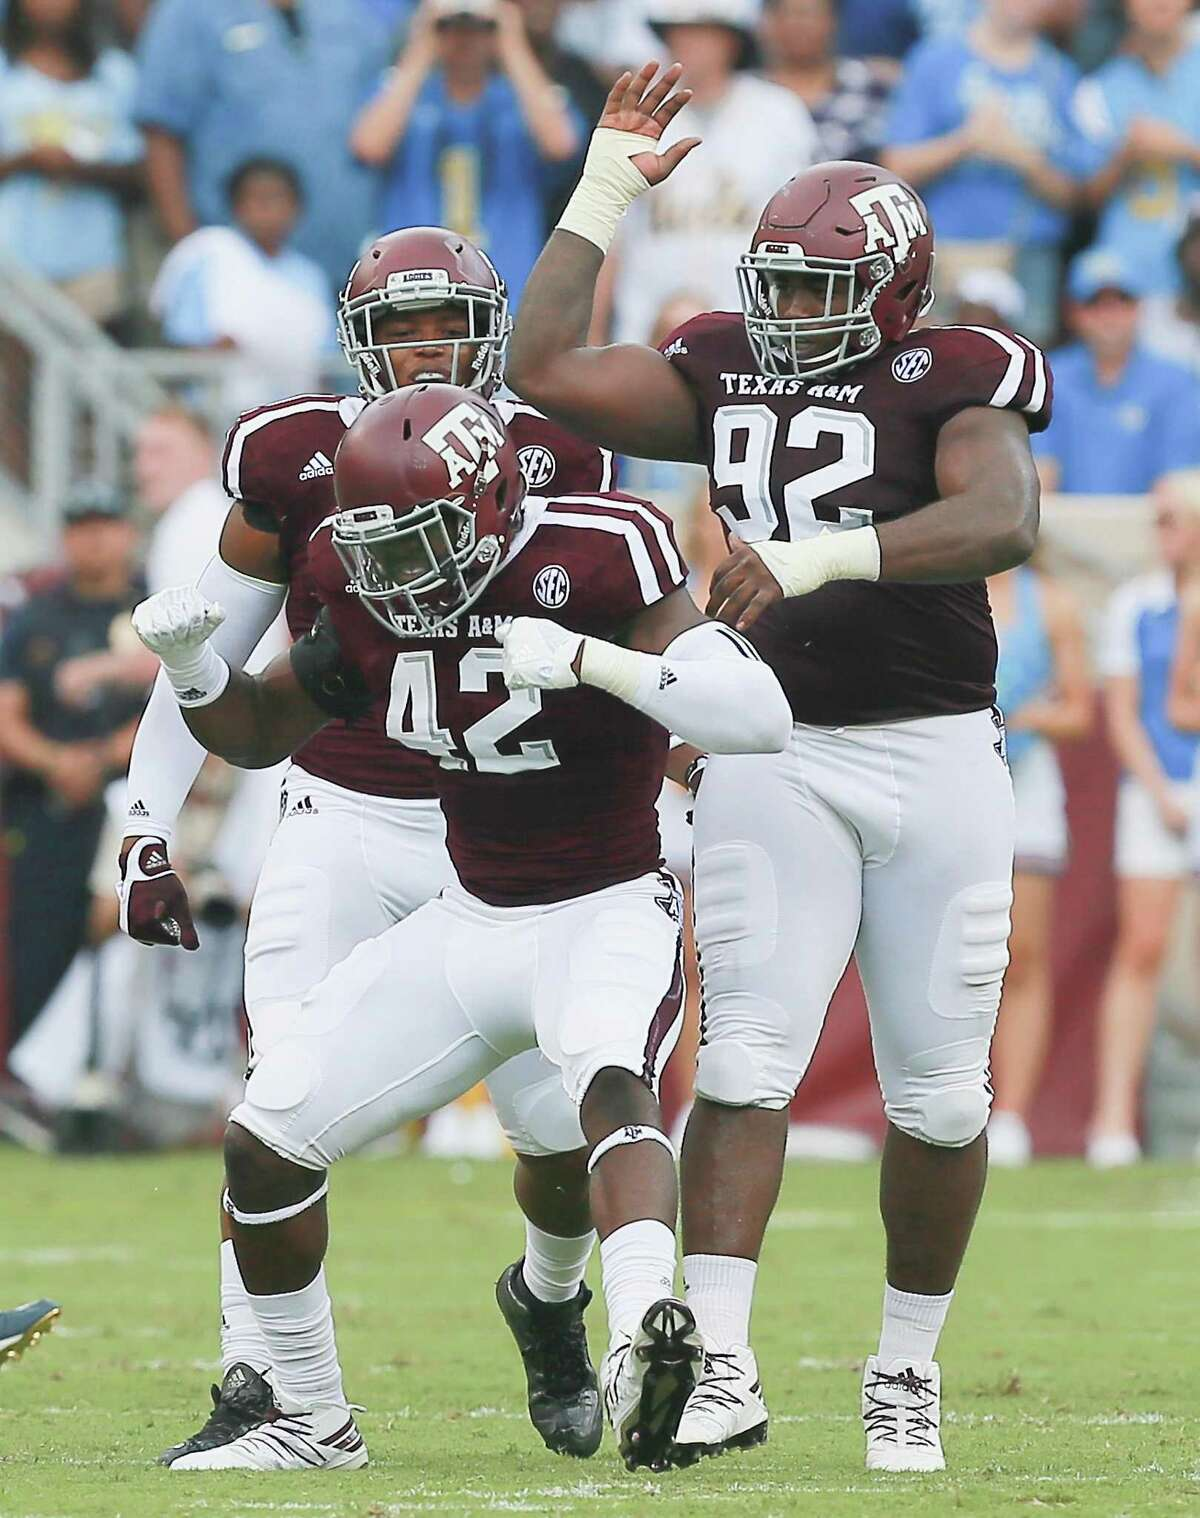 Otaro Alaka (42) of the Texas A&M Aggies celebrates with Zaycoven Henderson (92) after a defensive stop against the UCLA Bruins on Sept. 3, 2016 in College Station.